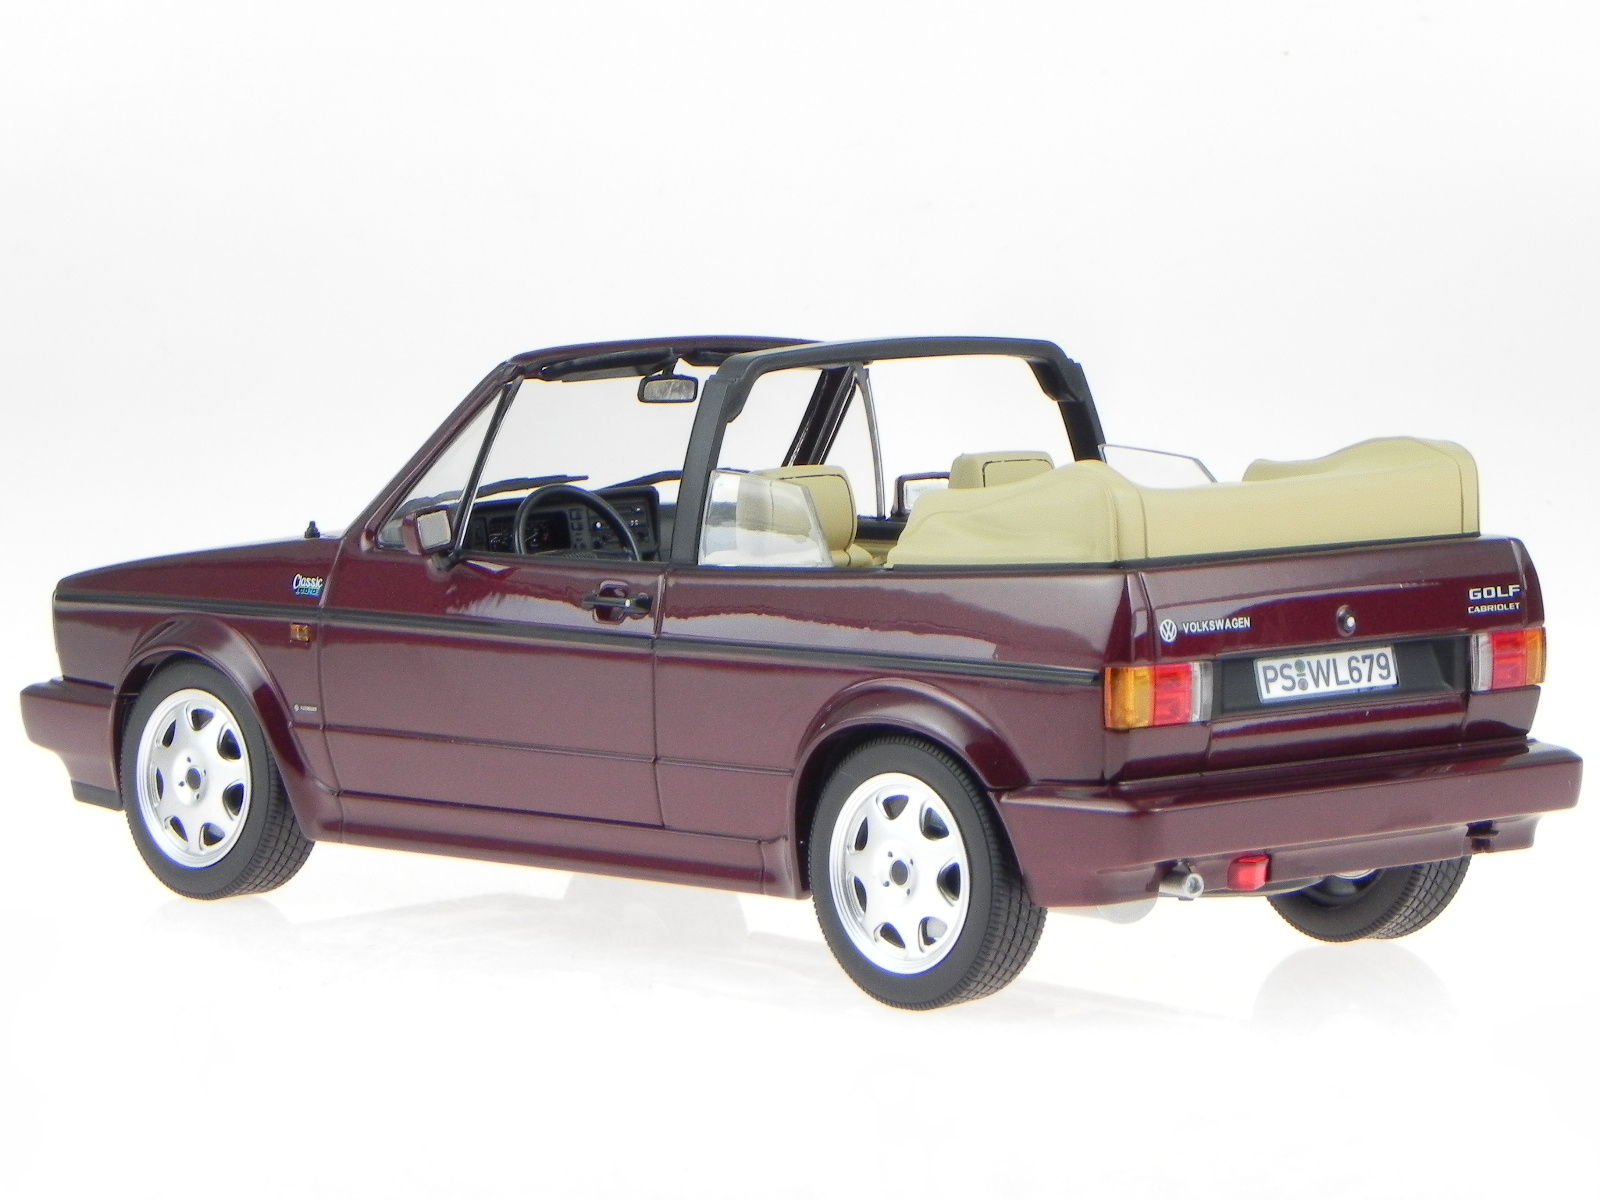 vw golf 1 cabrio classic line 1992 rot modellauto 188403. Black Bedroom Furniture Sets. Home Design Ideas